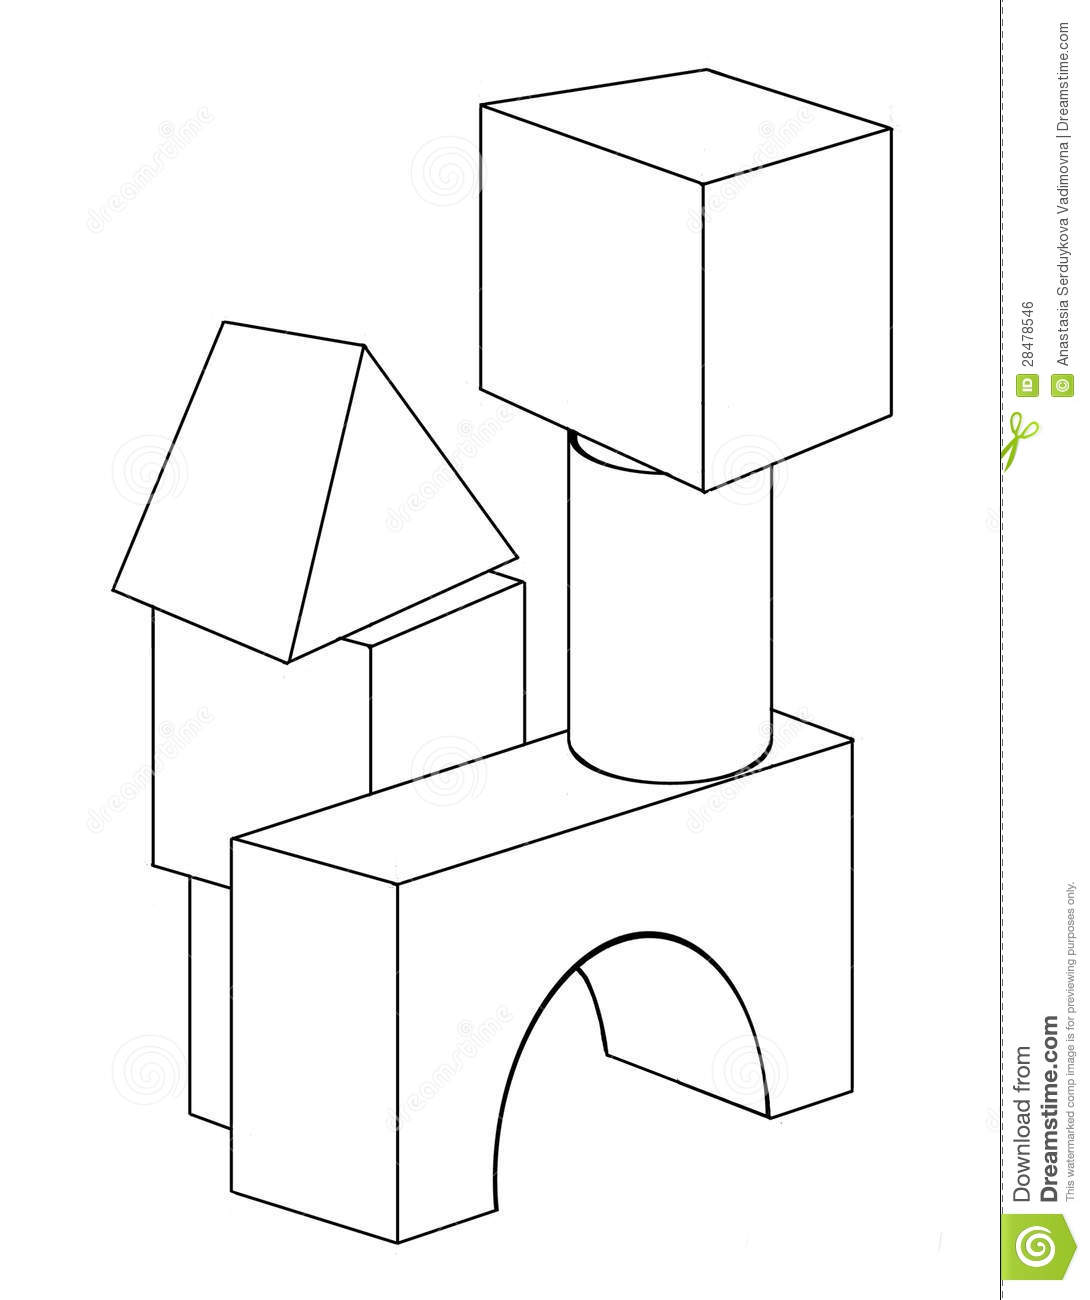 free printable blocks coloring pages - photo#8